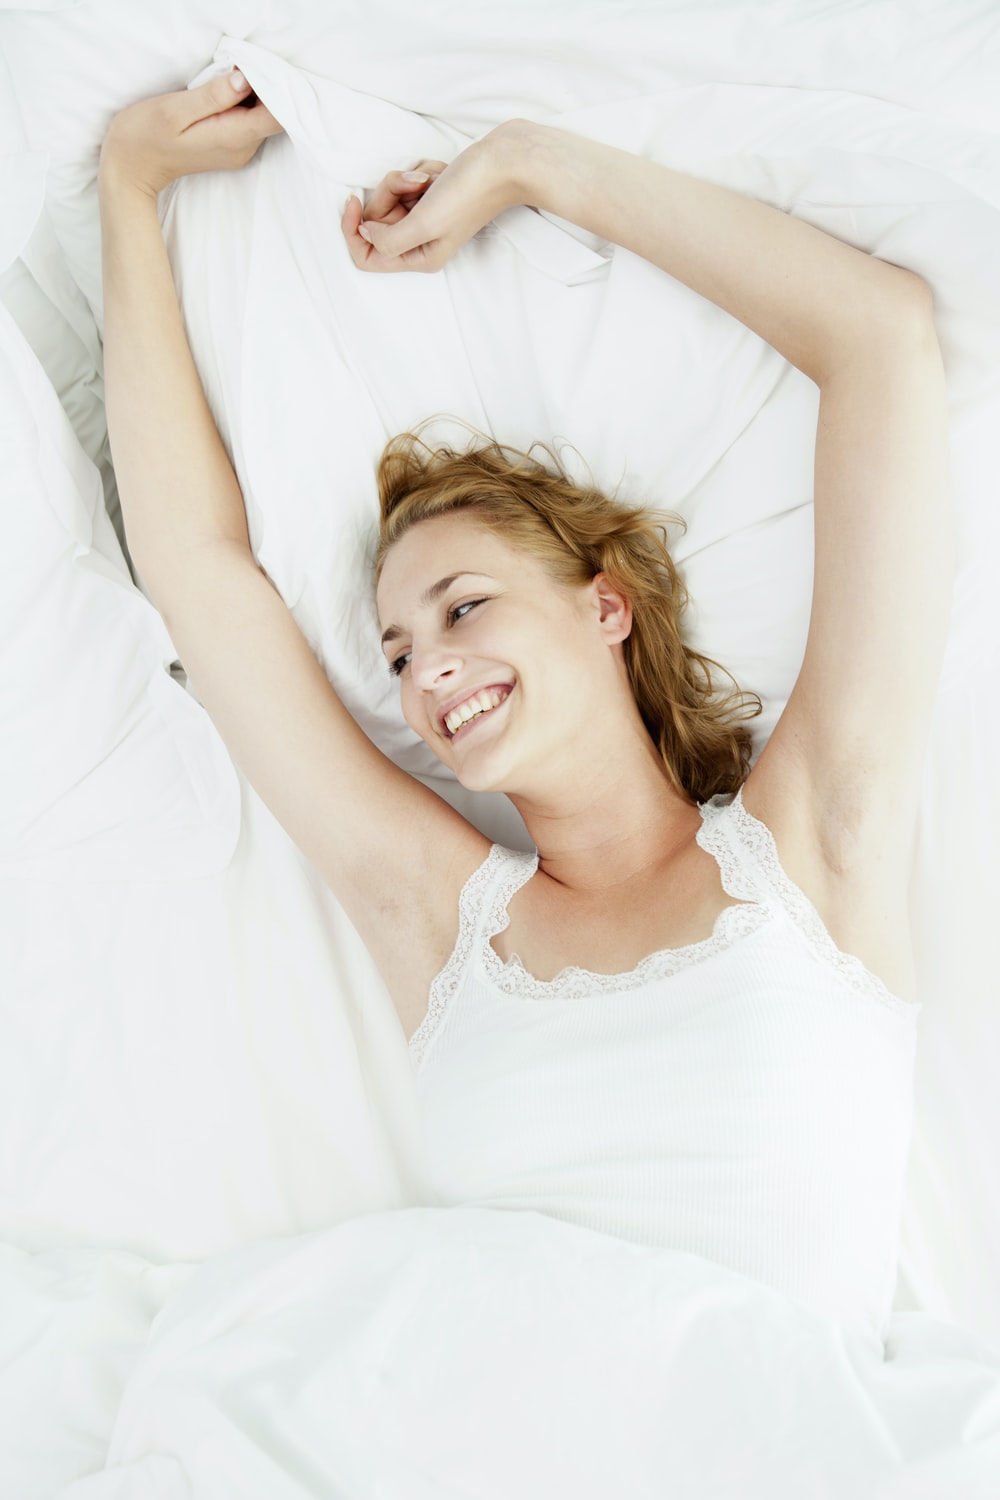 girl in white tank top lying on bed